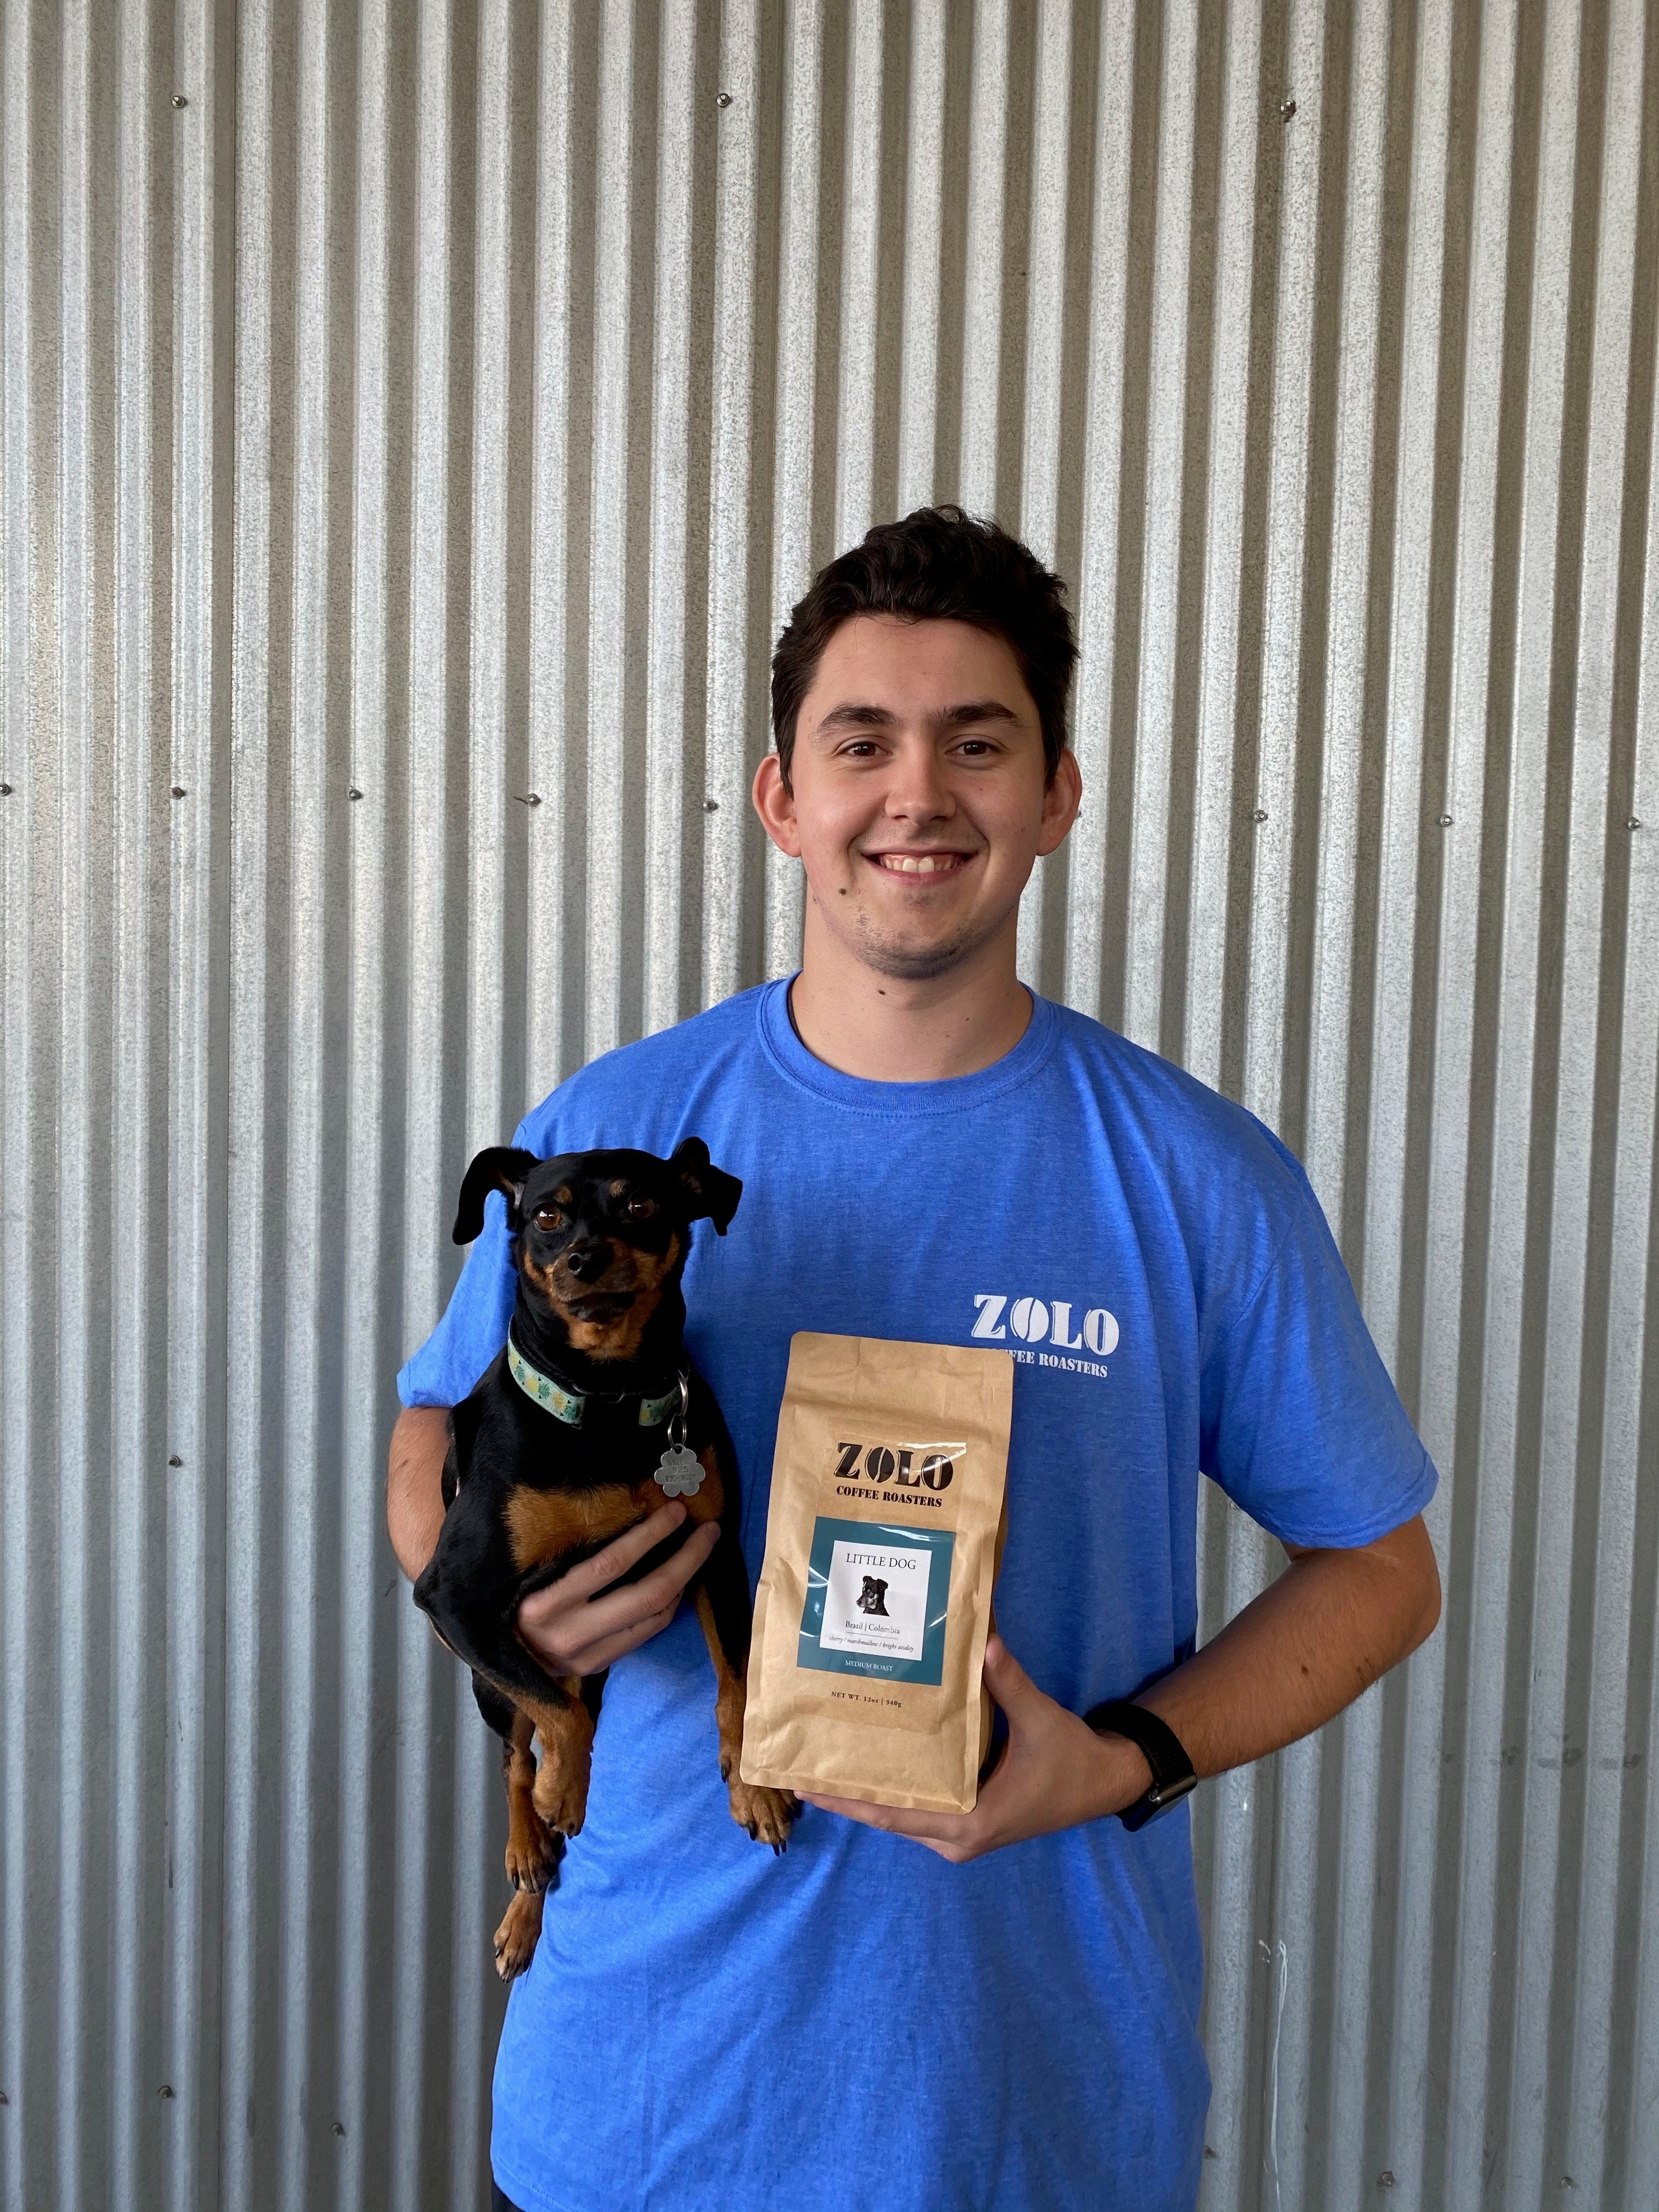 Blue Zolo T-Shirt and Bag of Coffee